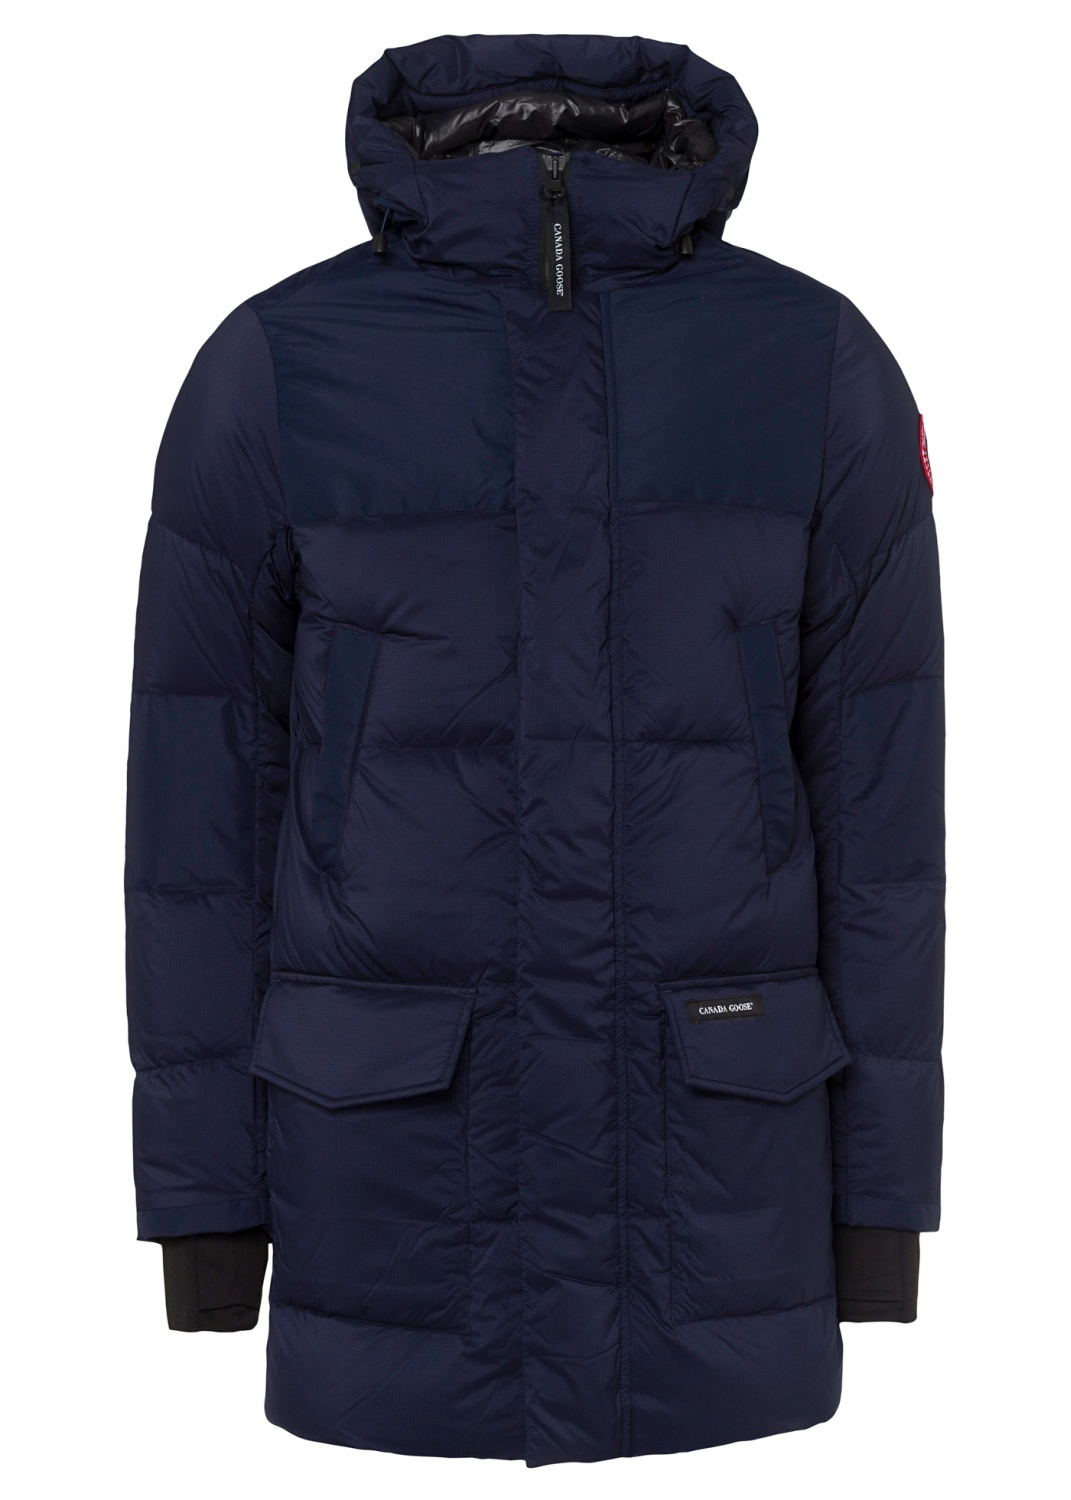 Armstrong Parka image number 0